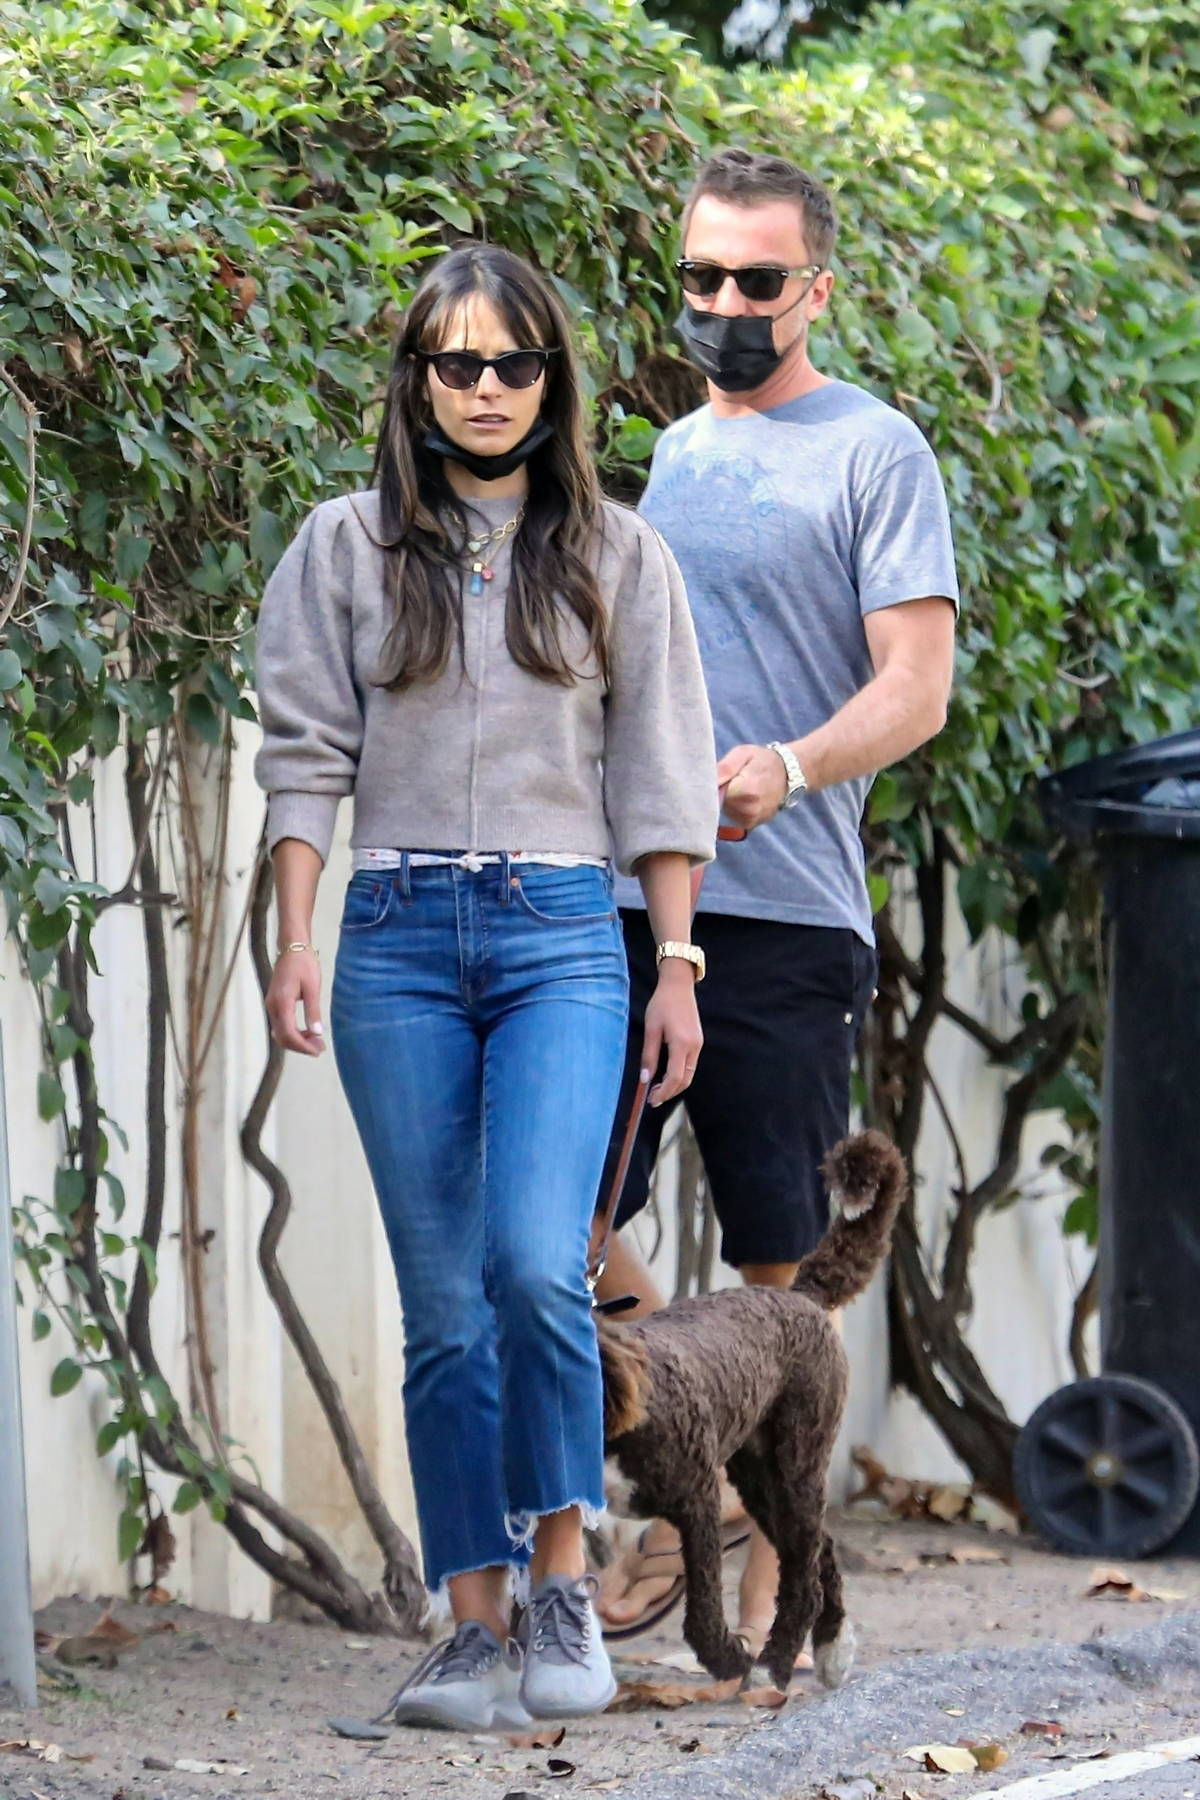 Jordana Brewster takes her puppy out for a walk with boyfriend Mason Morfit in Brentwood, California